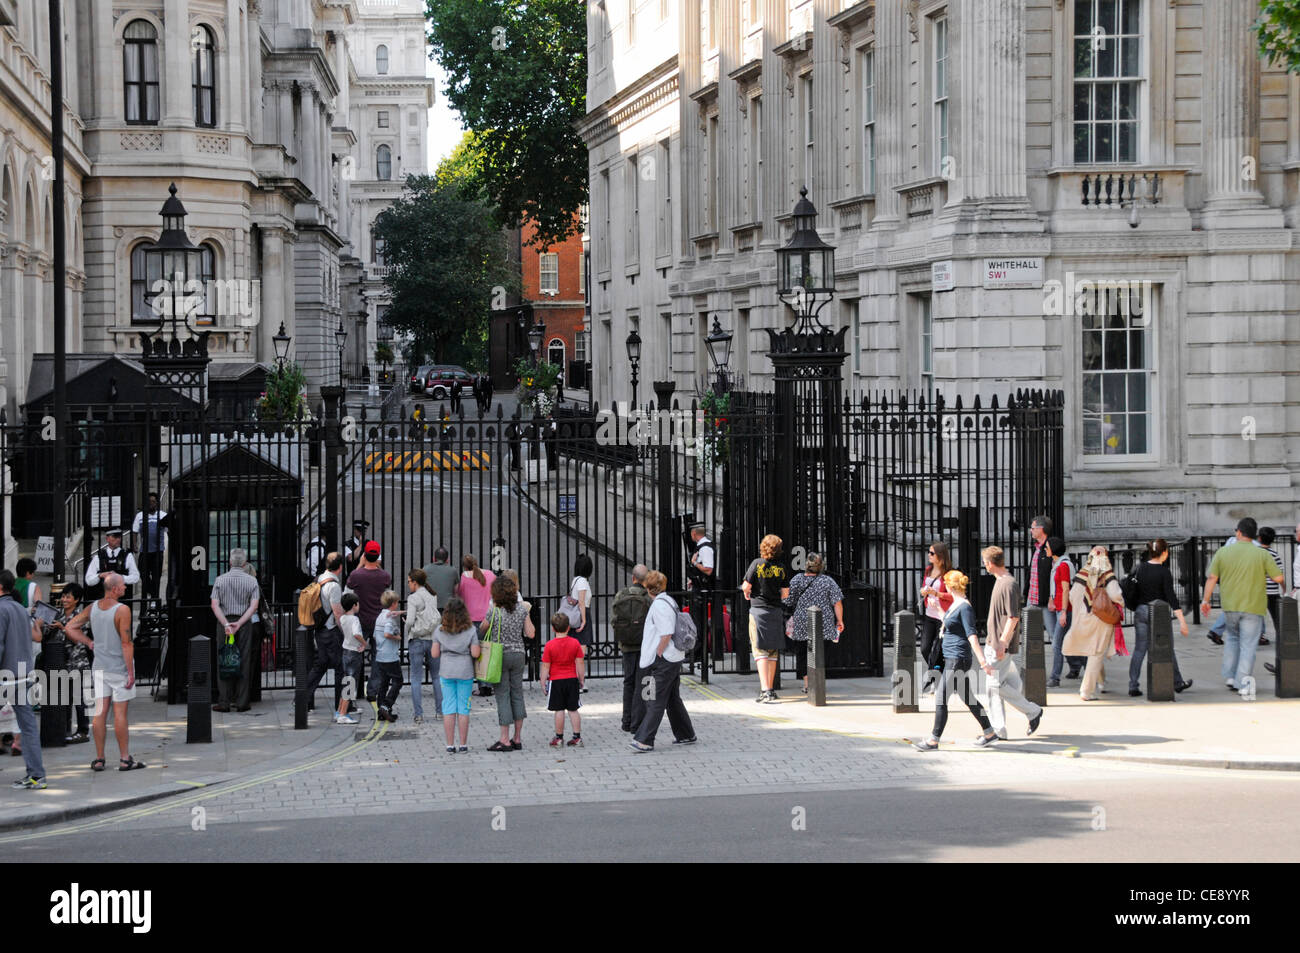 Tourists on the Whitehall side of Downing Street in front of steel security gates controlled by Metropolitan police - Stock Image